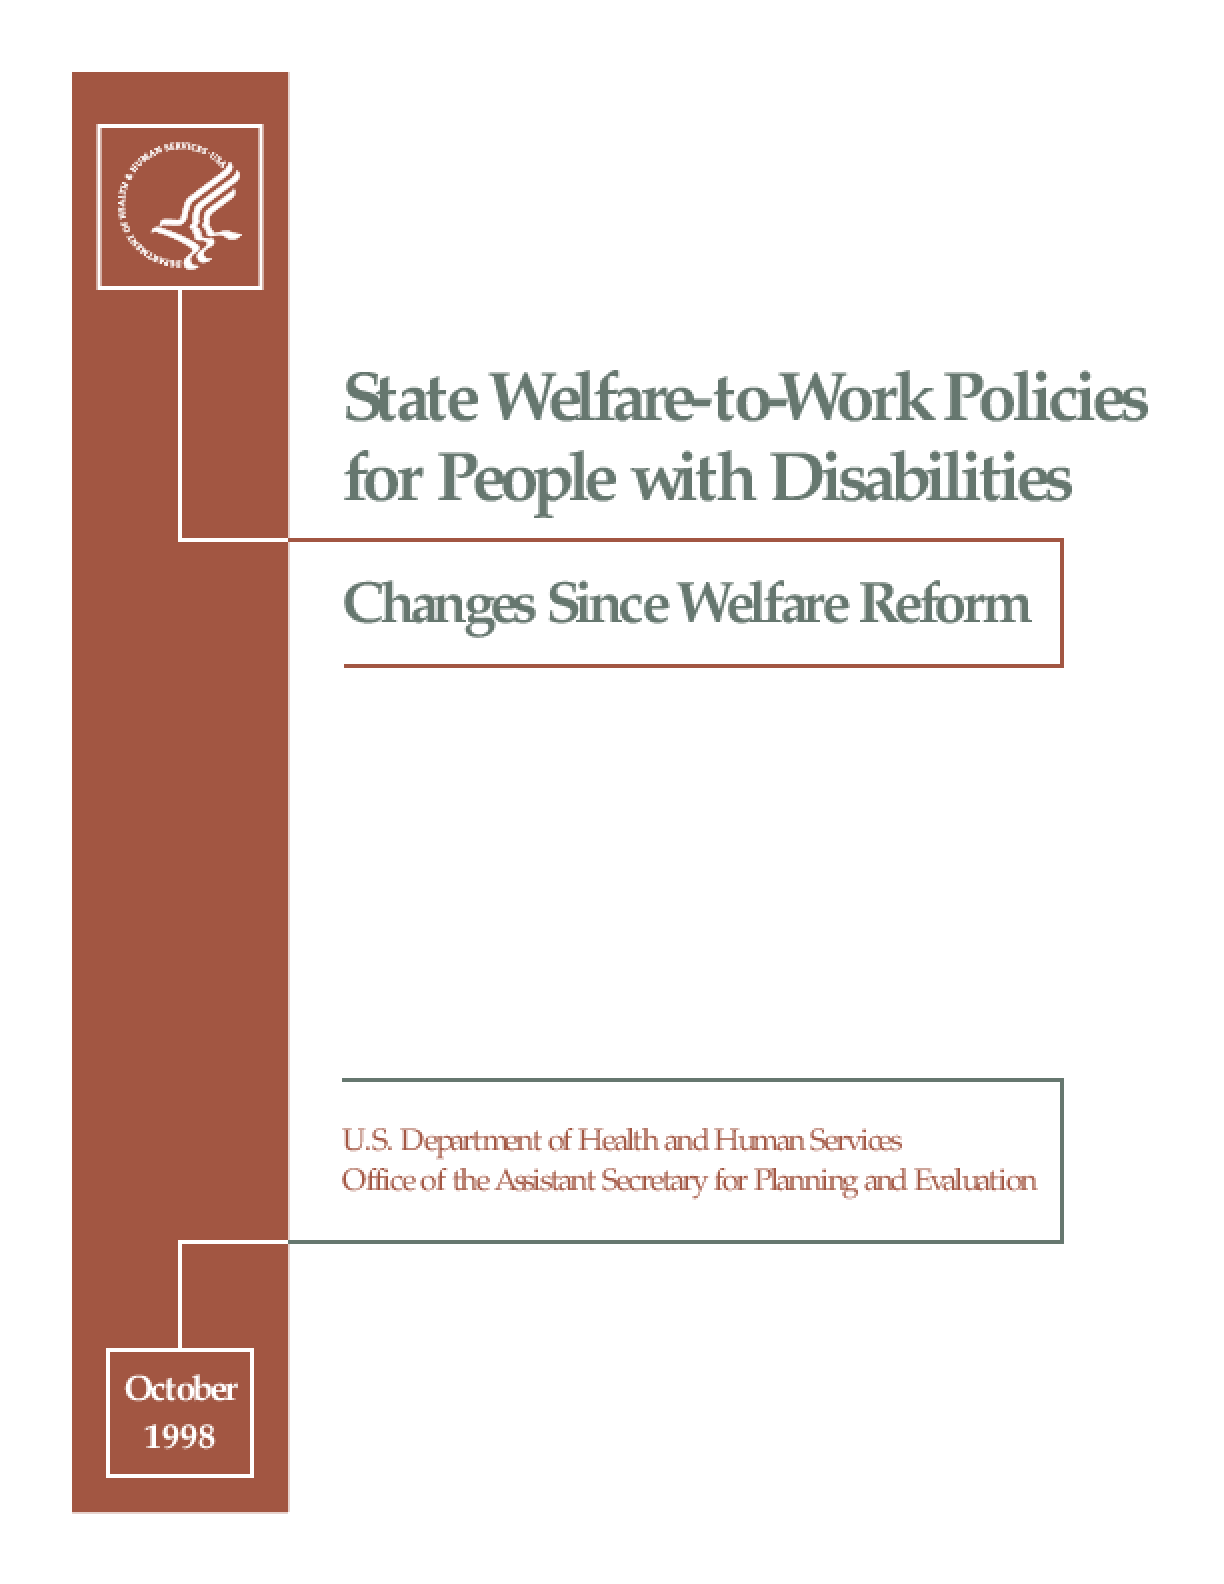 State Welfare-to-Work Policies for People with Disabilities